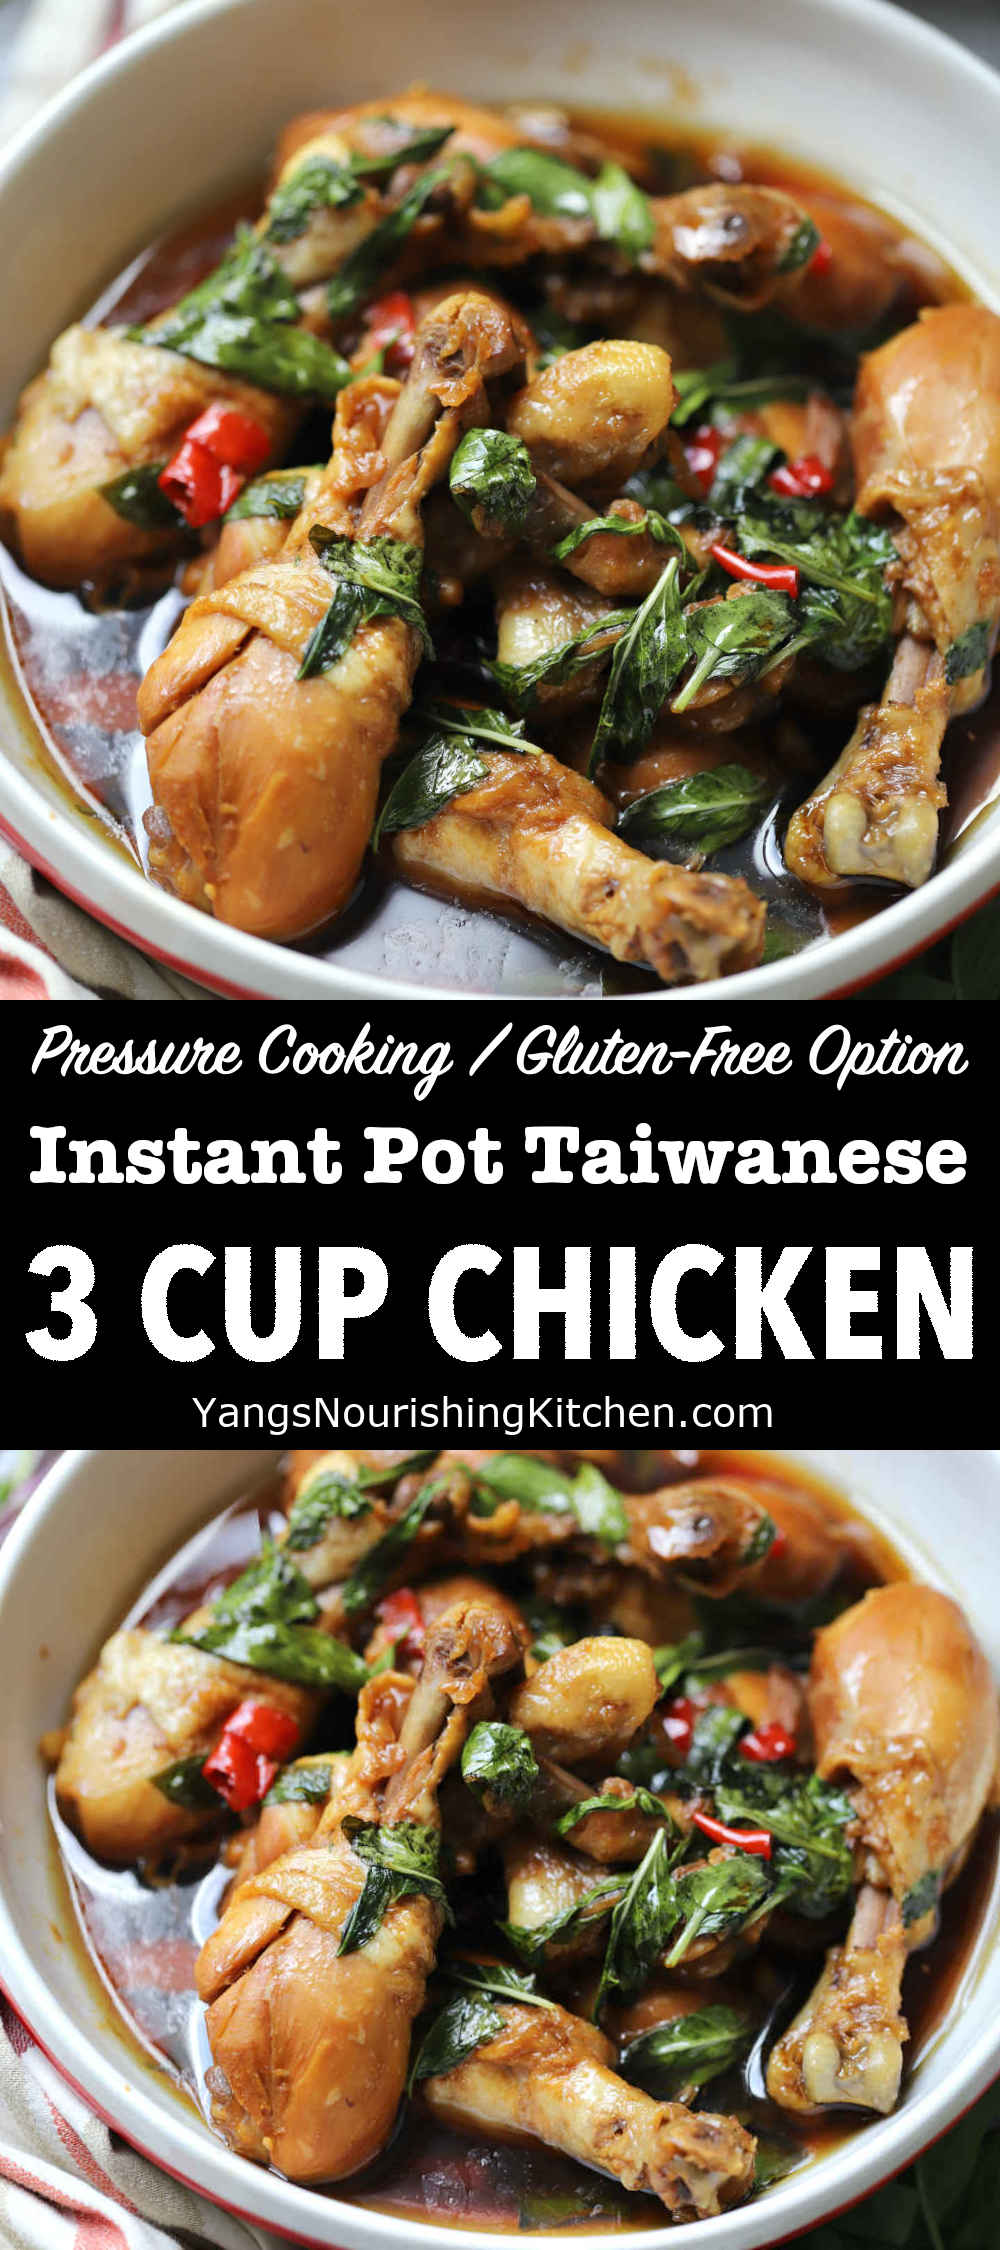 Instant Pot 3 Cup Chicken